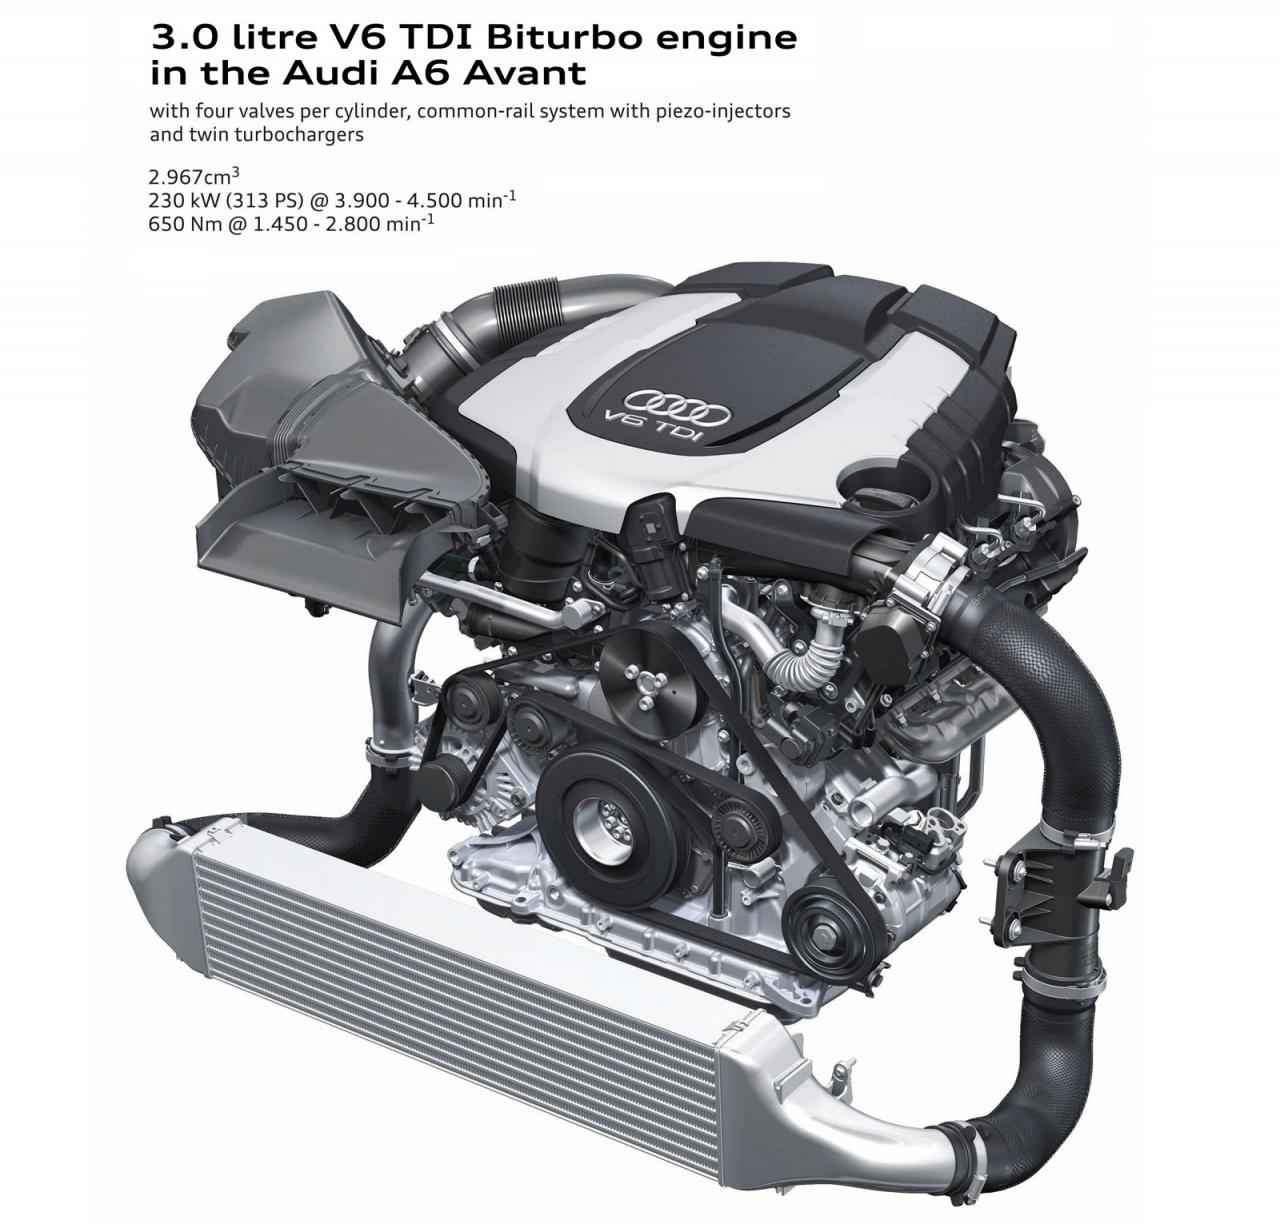 Audi Biturbo Diesel Engine Launched